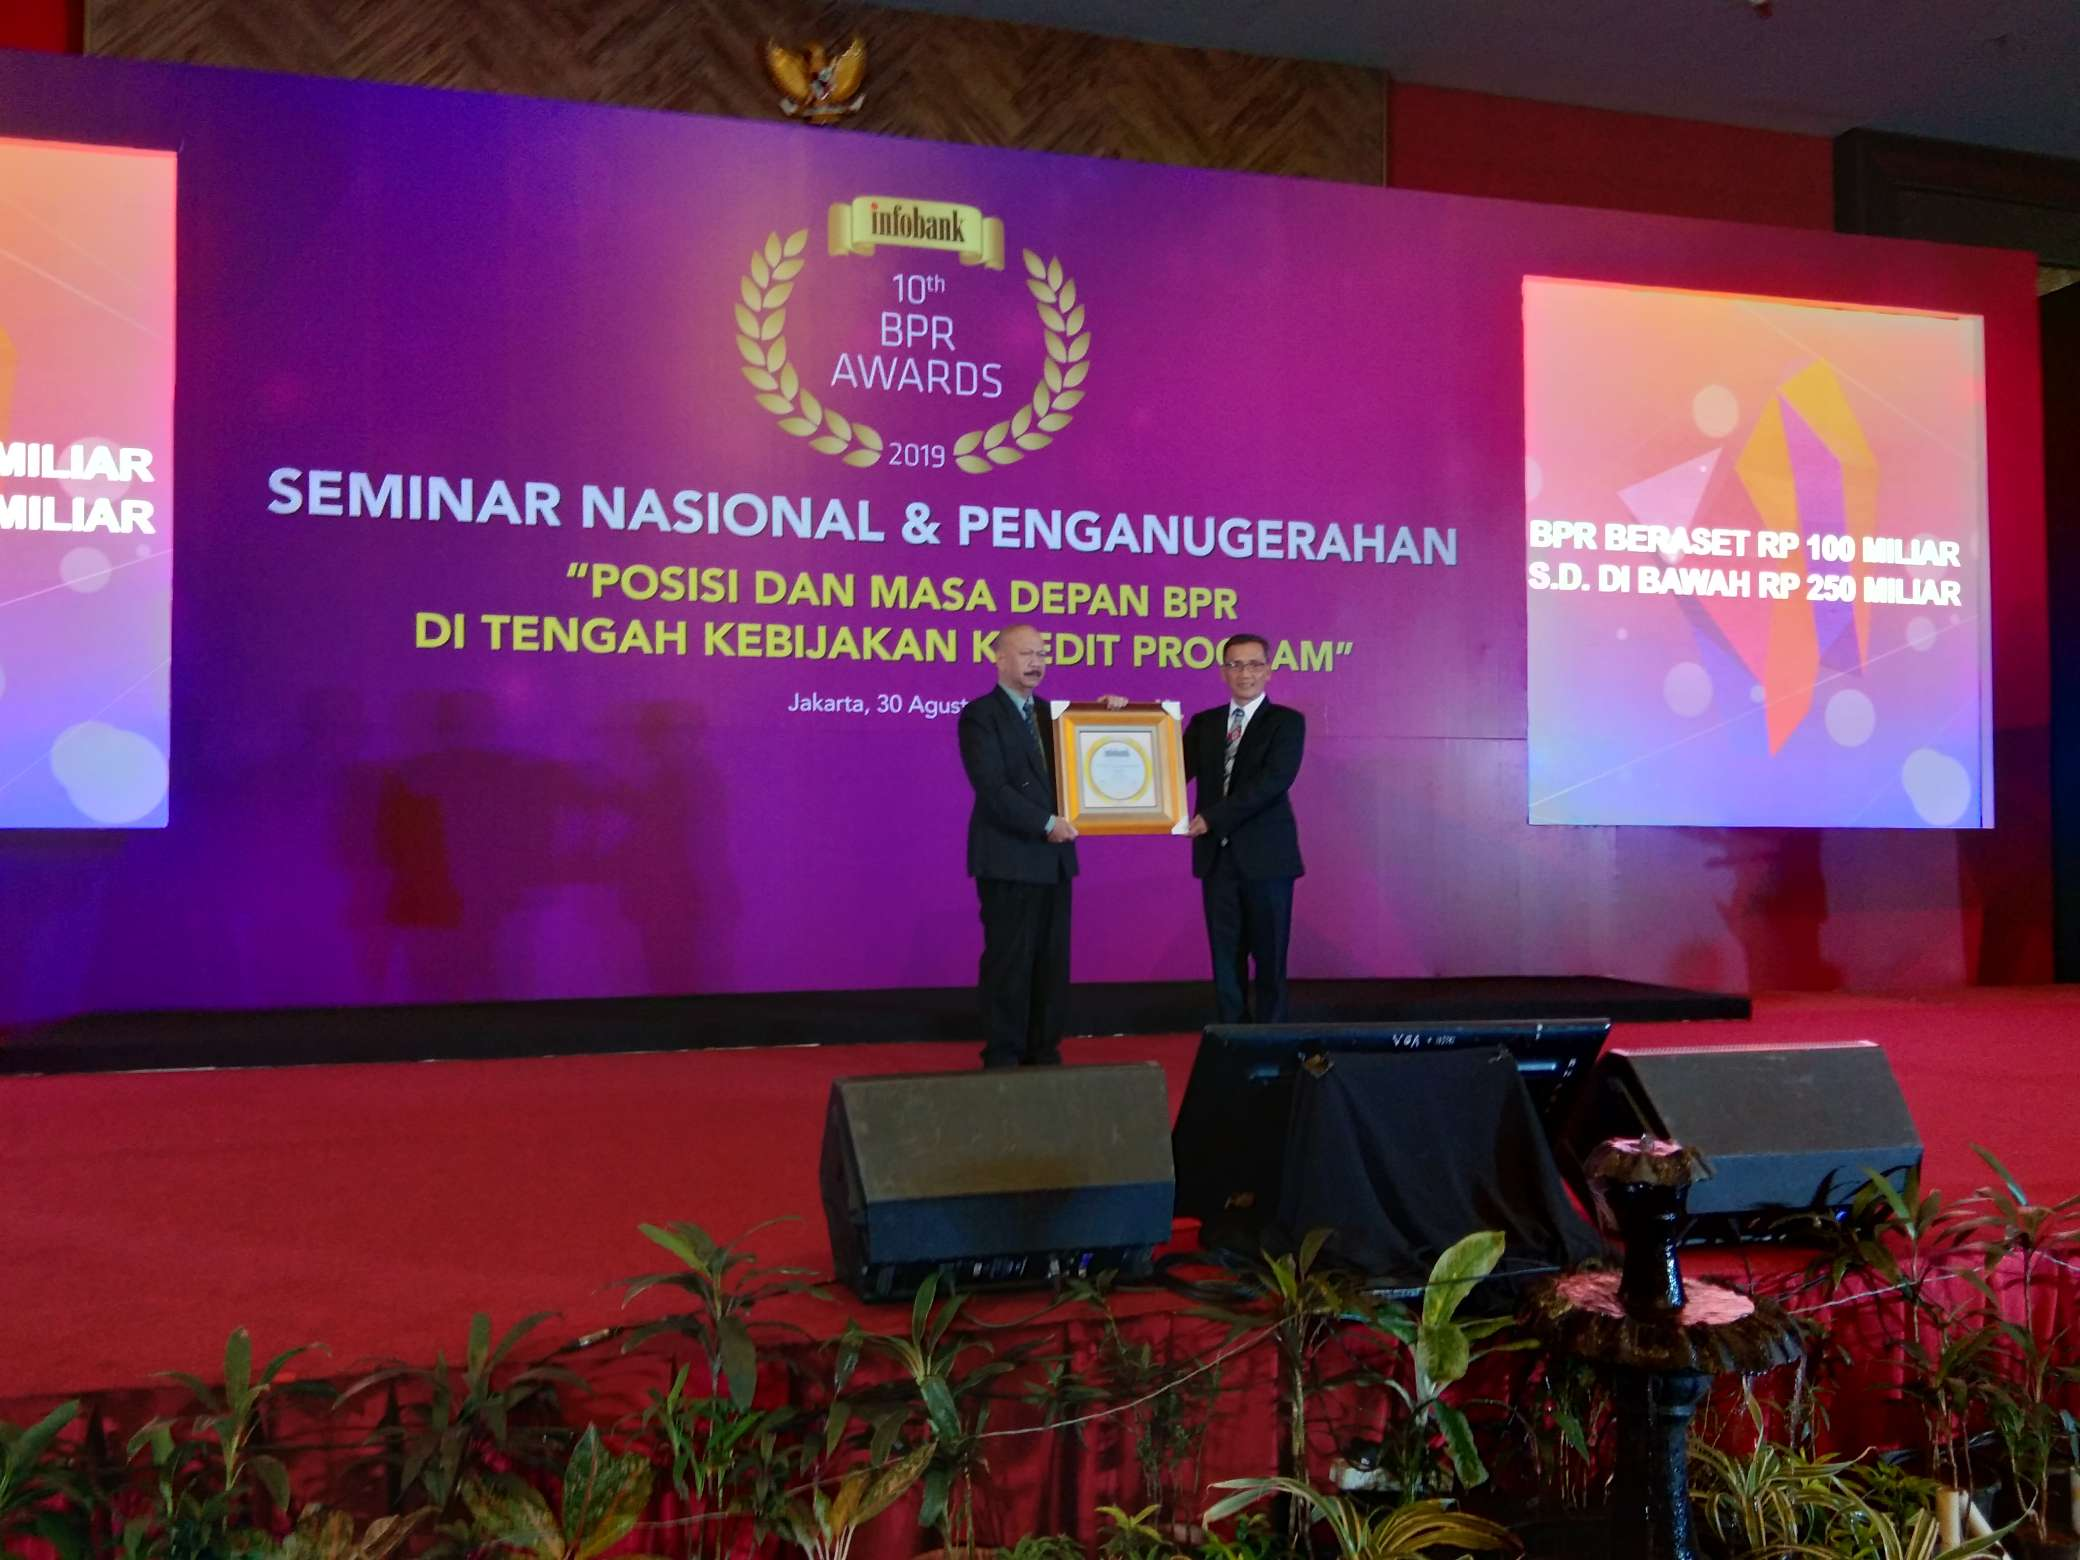 BPR Aruna raih  GOLDEN AWARDS Infobank 10th  BPR Awards 2019